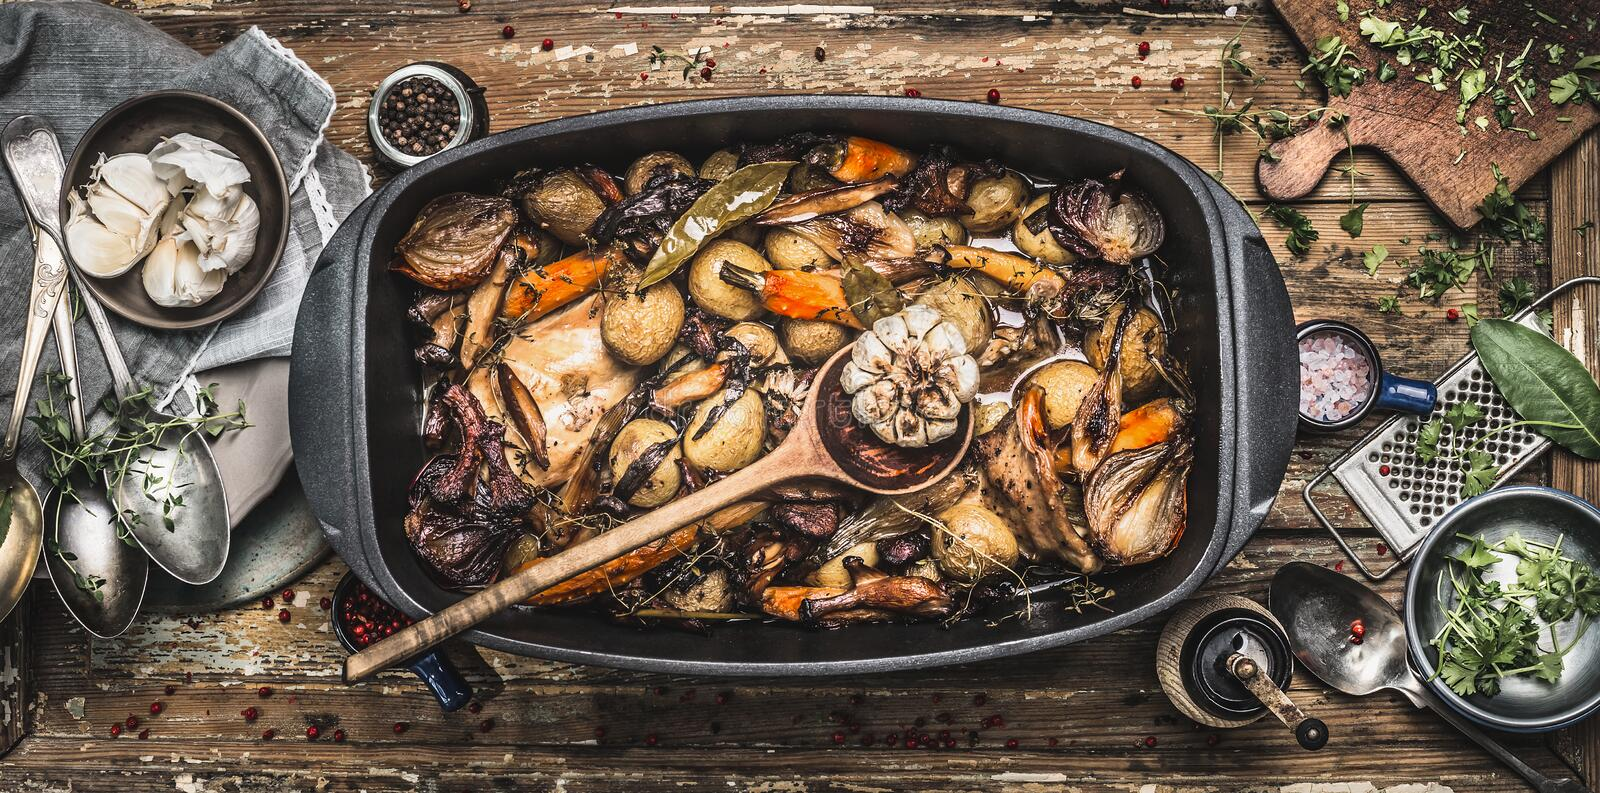 Country stew in vintage casserole with cooking spoon and roasted vegetables on rustic kitchen table background with tools stock photography